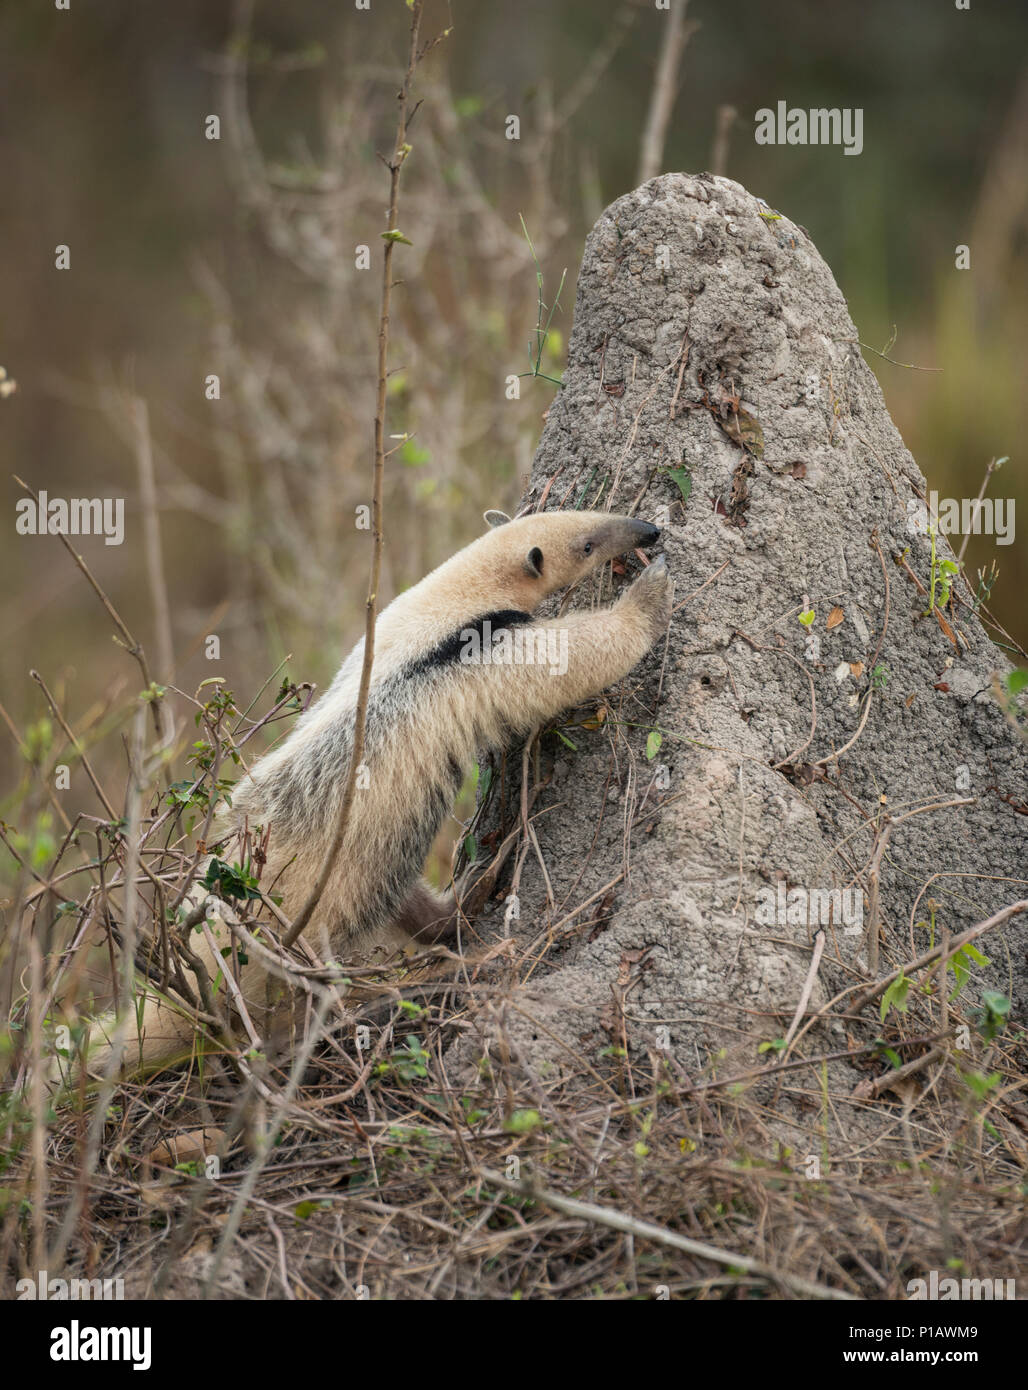 A Southern Tamandua eating on a termite mound in the Pantanal of Brazil - Stock Image